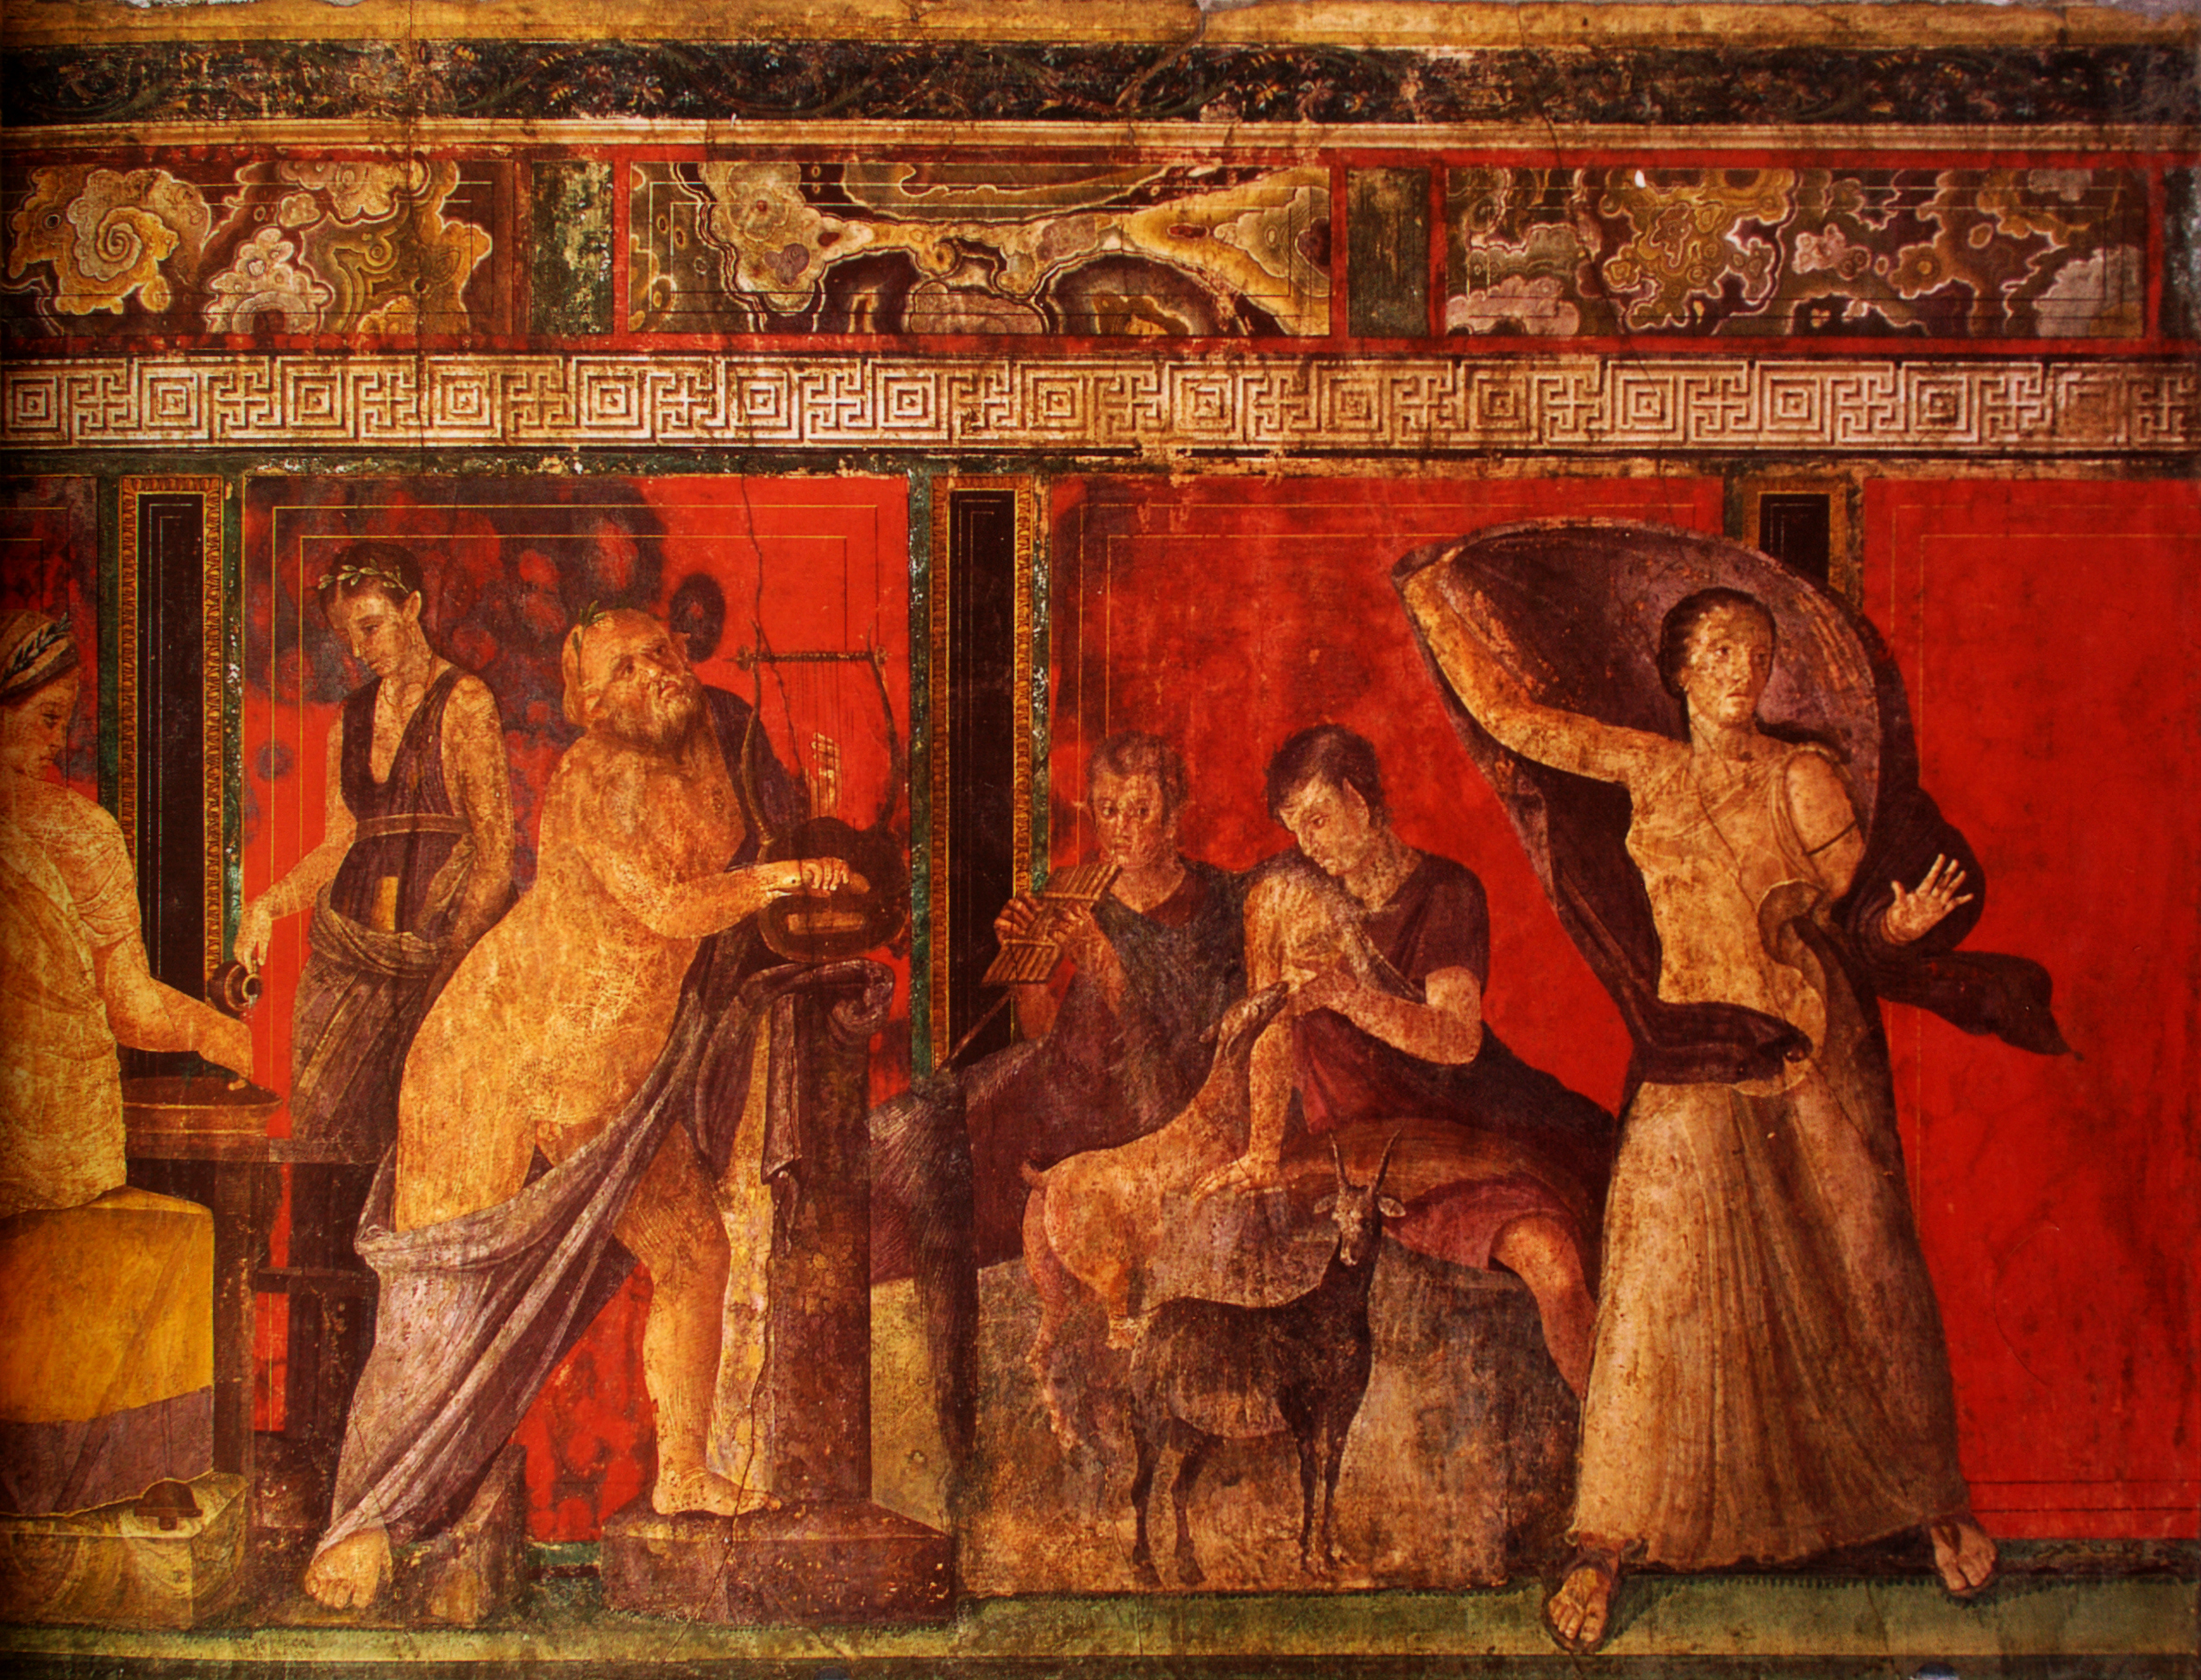 Silenus holding a lyre (left); demi-god Pan and a nymph sitting on a rock, nursing a goat (centre); woman with coat (right). Fresco of the mystery ritual, right, Villa of the Mysteries, Pompeii, Italy.